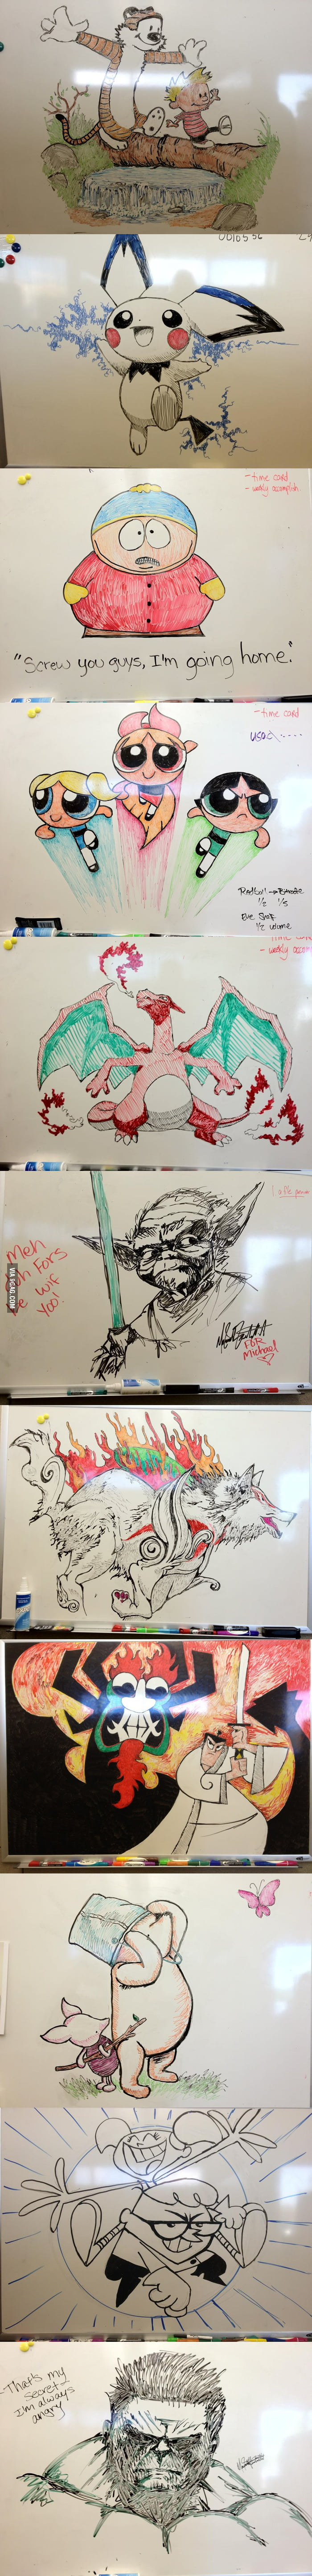 Awesome Whiteboard Drawing